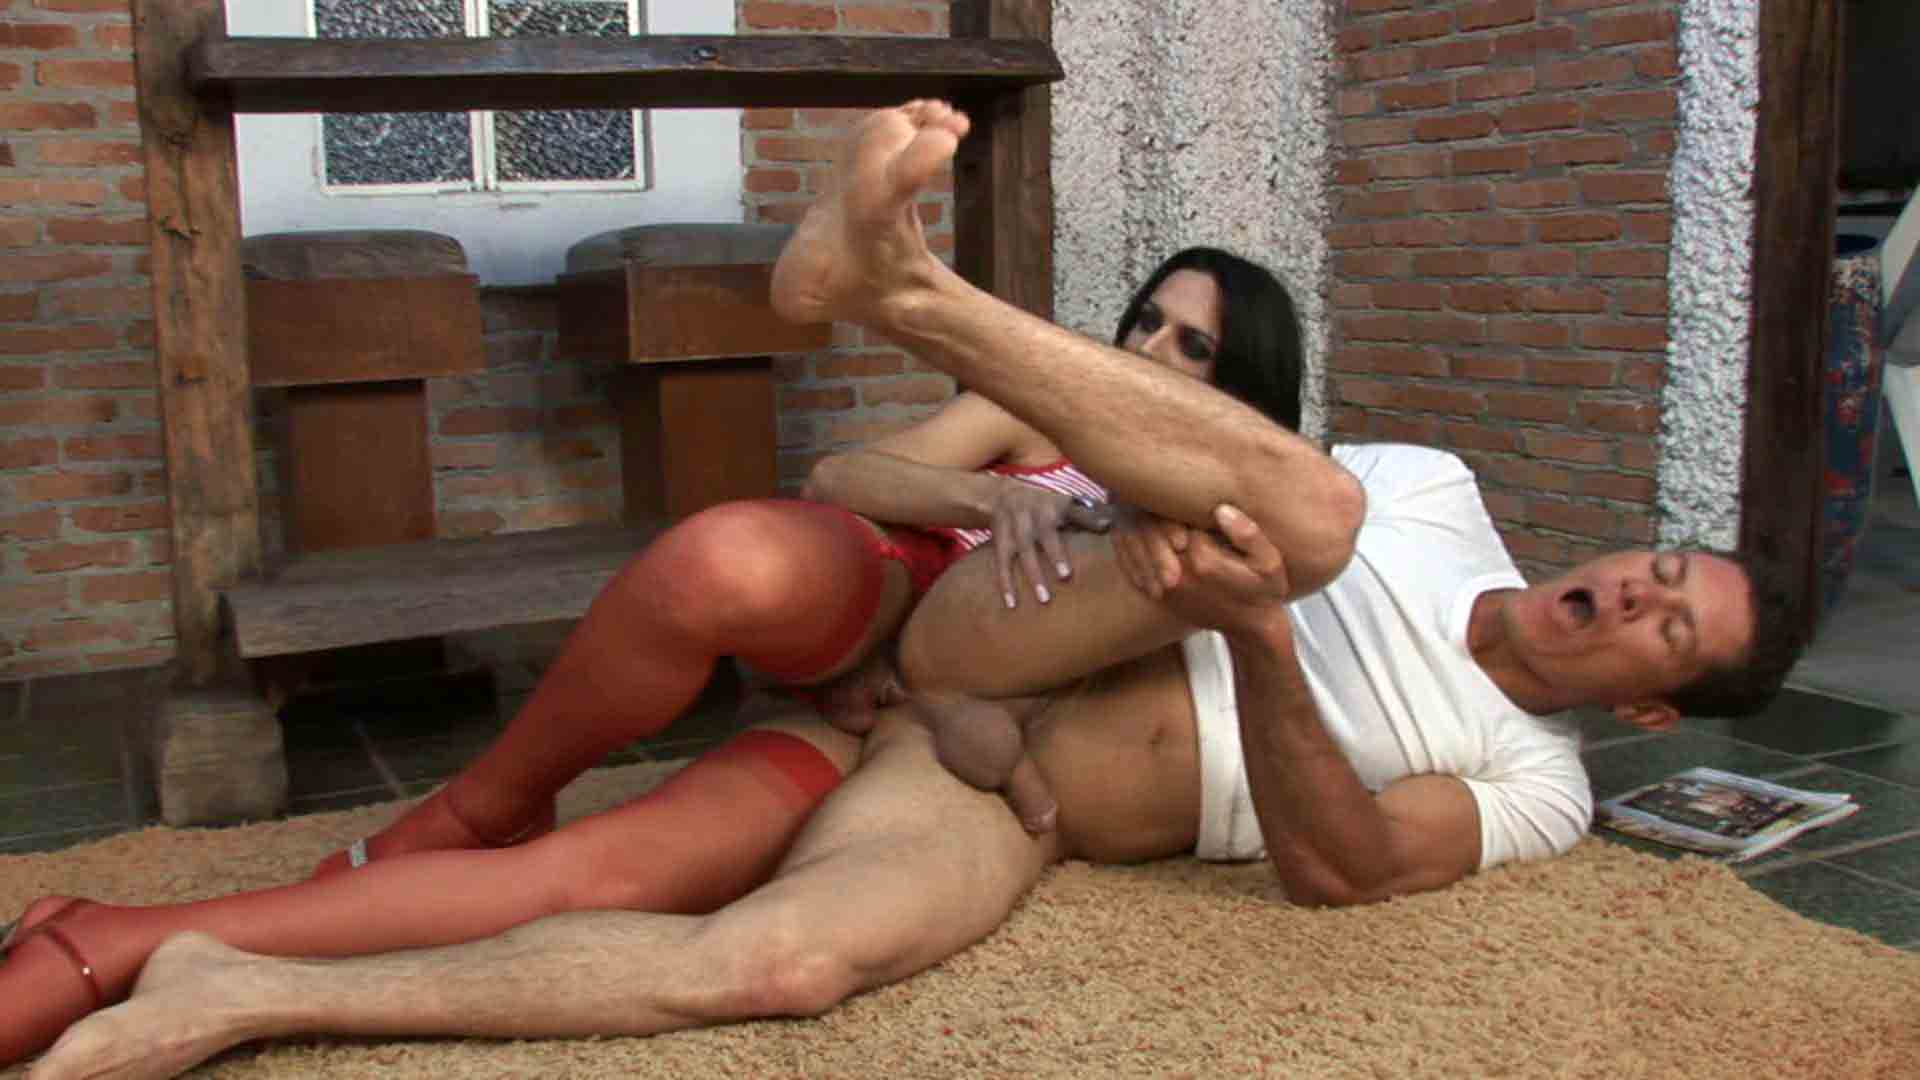 Viviane and Flavio shemale fucking dude on